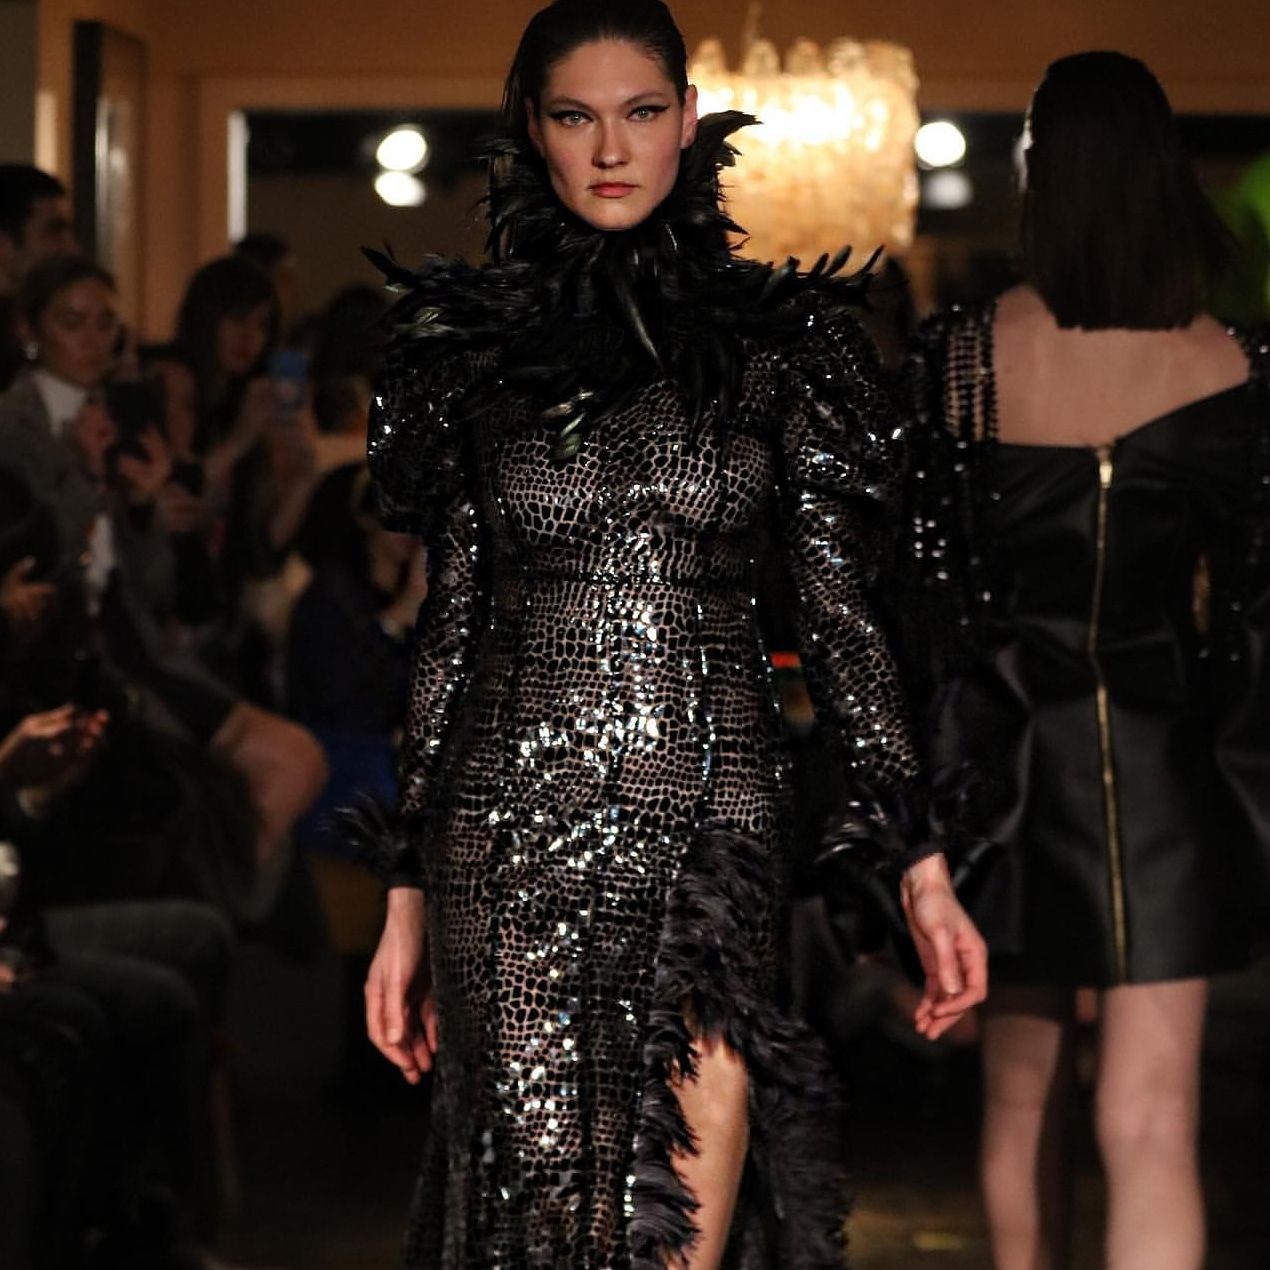 One Of The Inspiring Designers From The Jaded Life Collective Official London Fashion Week Showcase Vaseghia Alisa In 2020 Fashion Fashion Week London Fashion Week